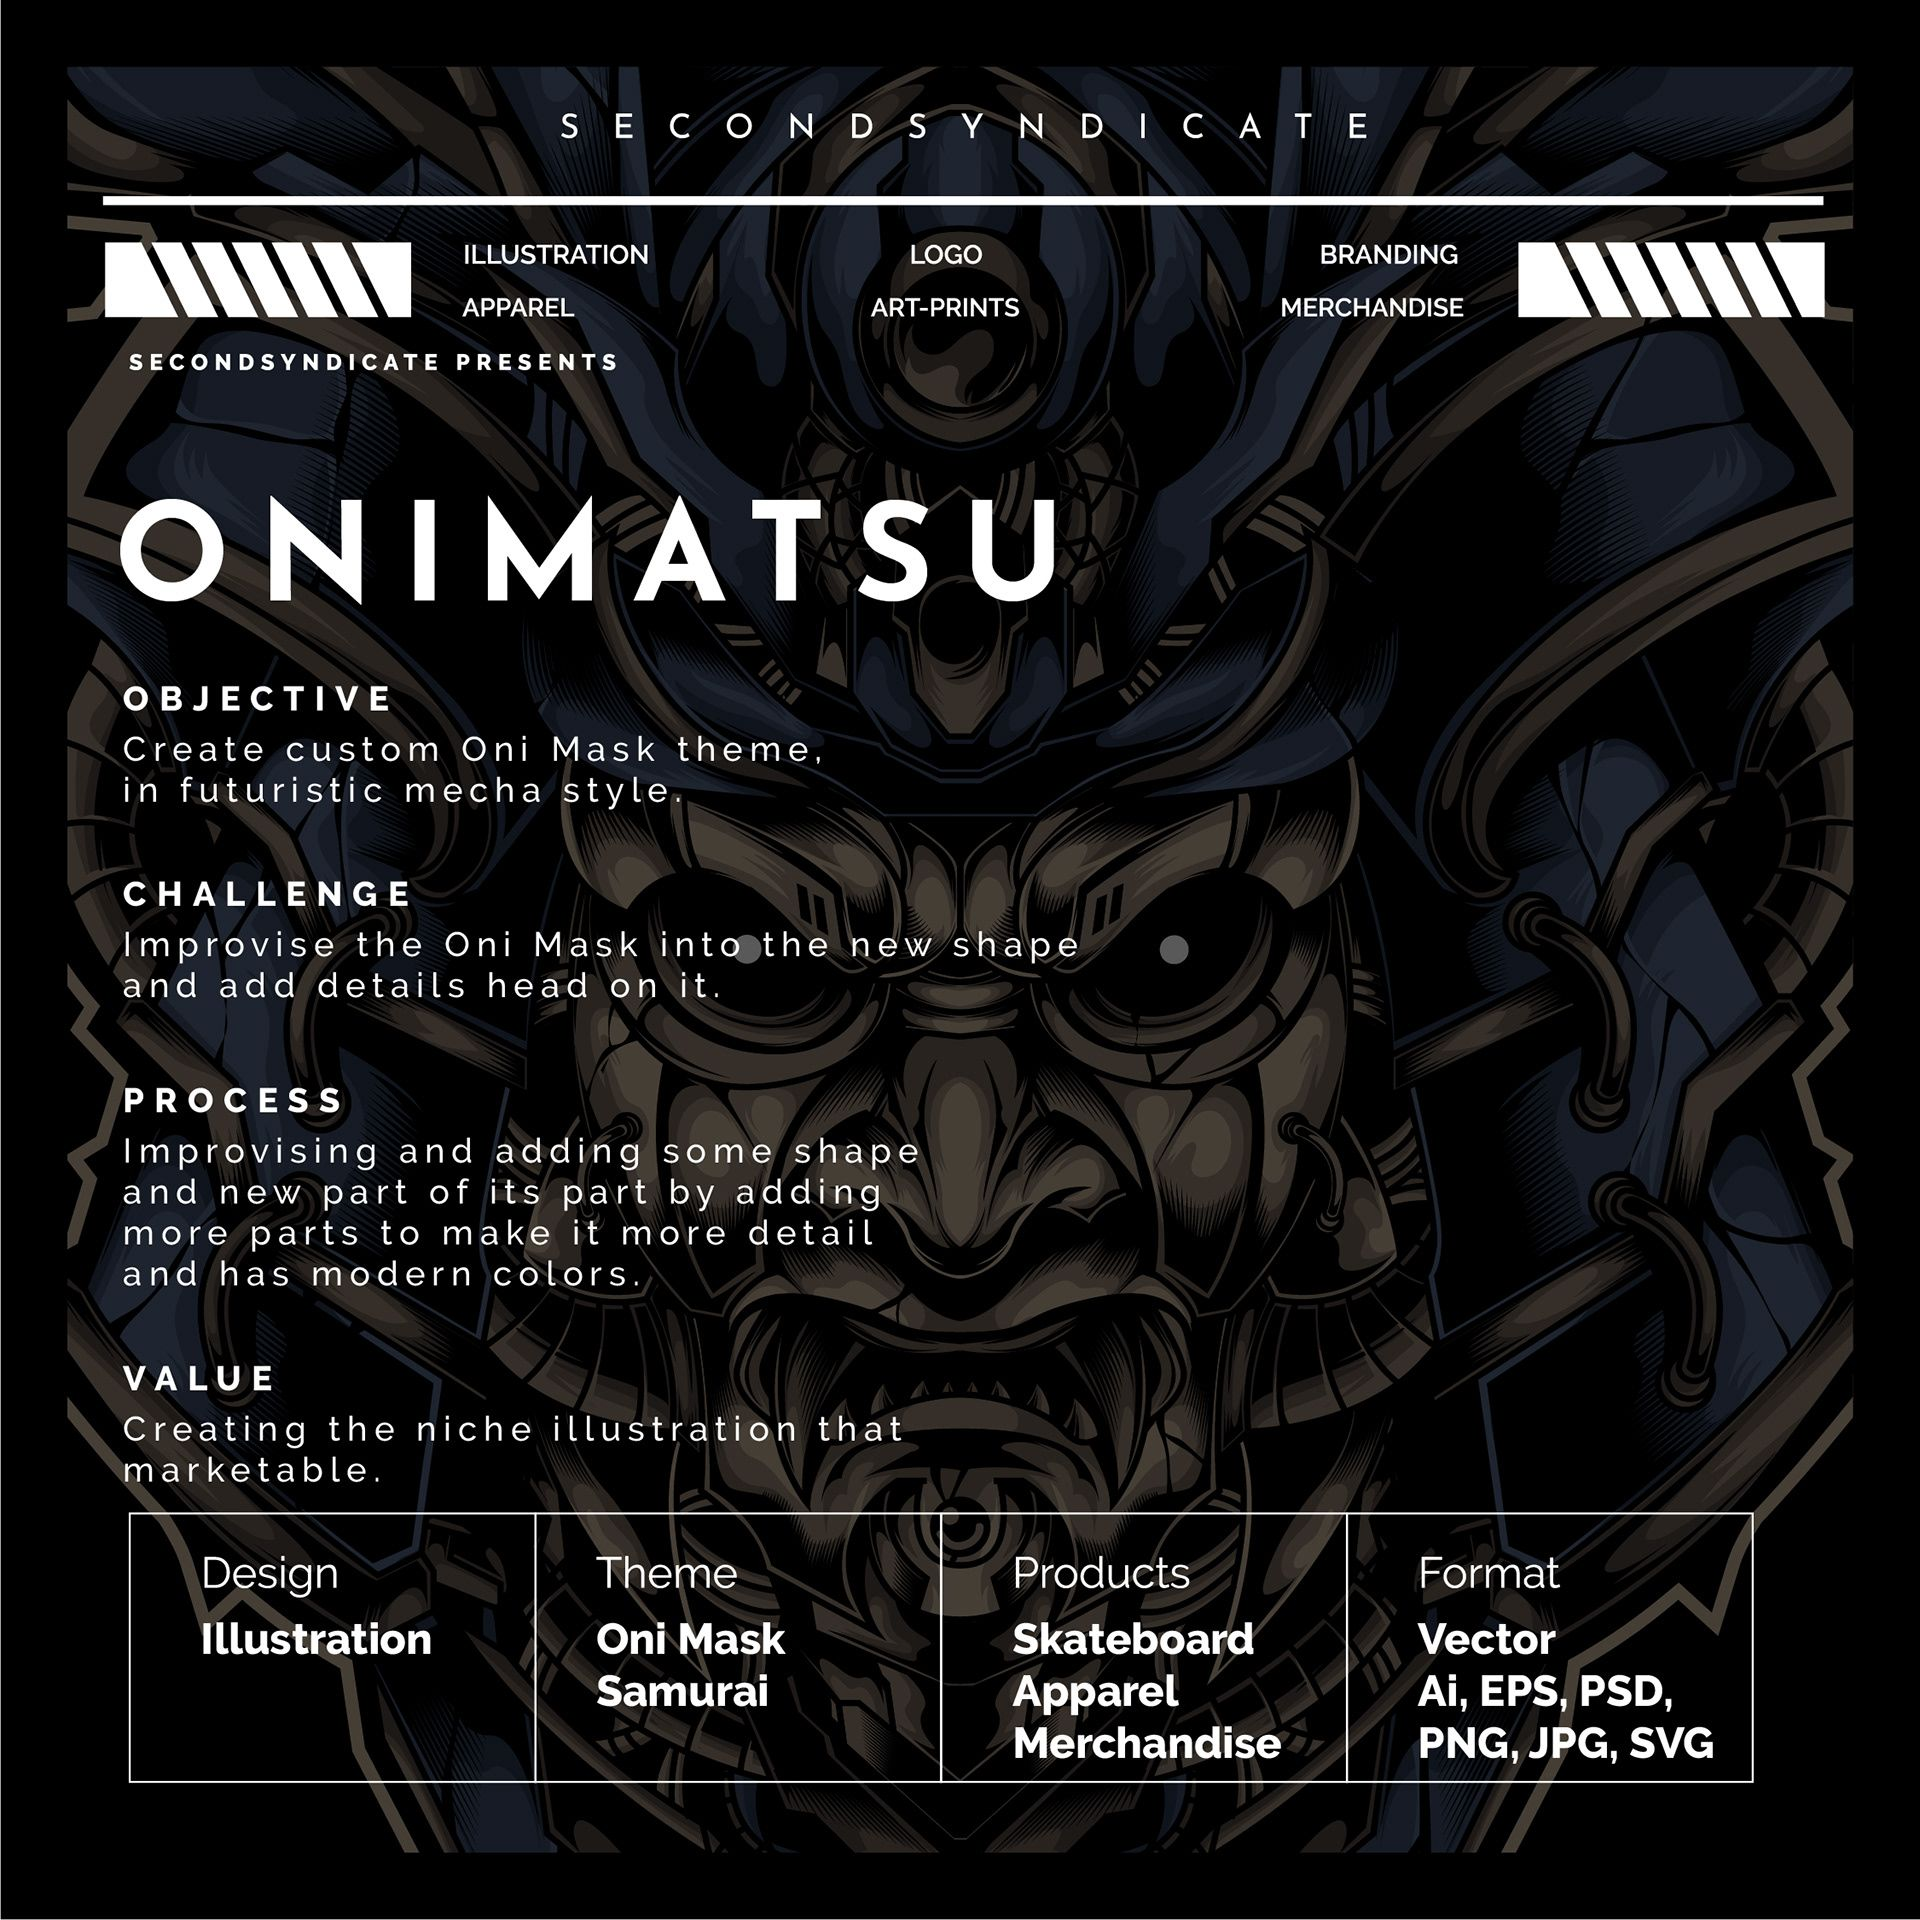 ONIMATSU on Behance in 2020 Behance, Improvisation, Art